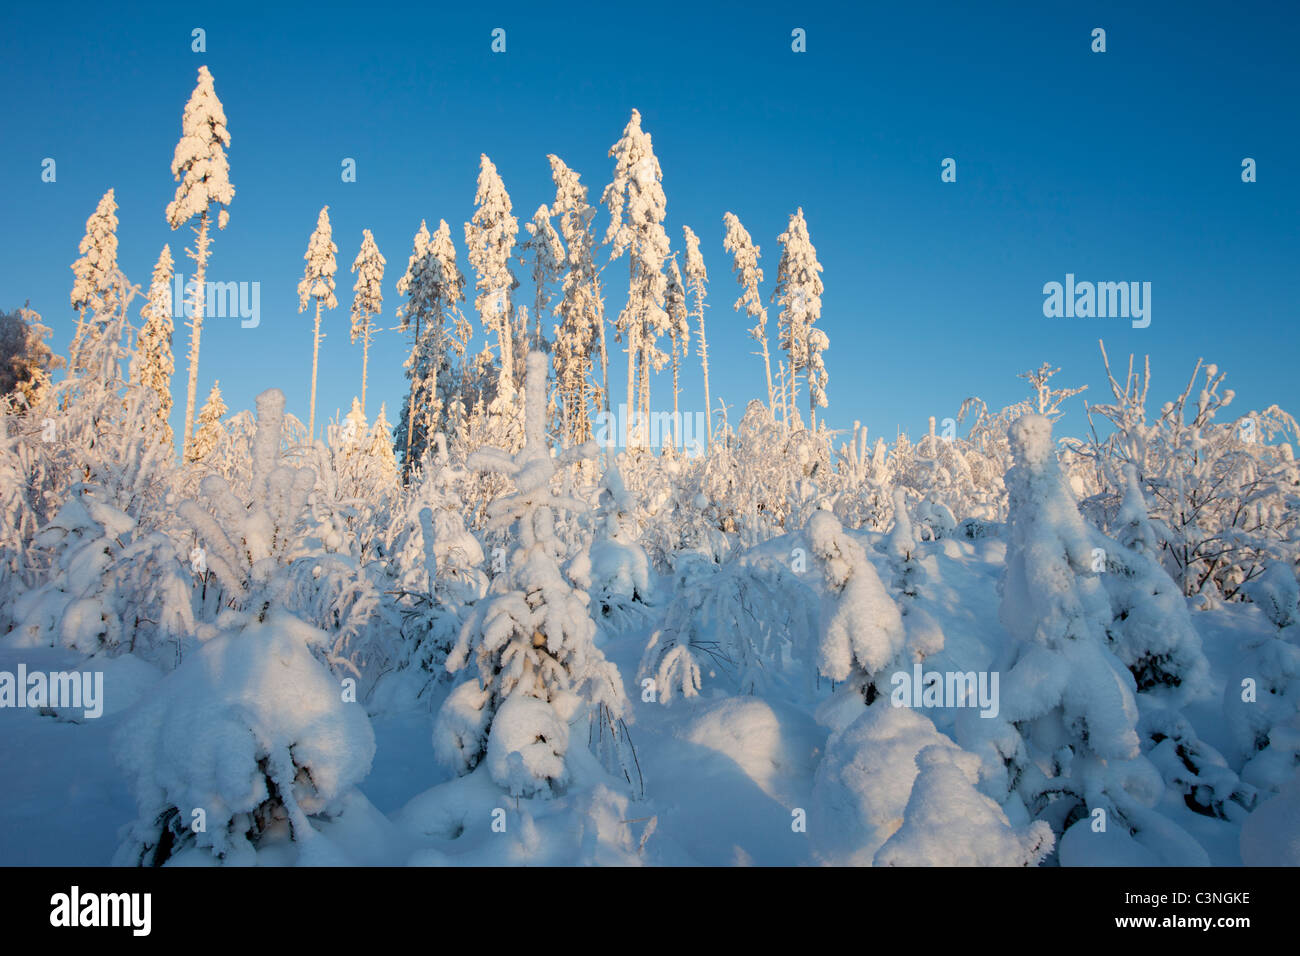 Planted pine saplings growing at an old clear cutting area , Finland - Stock Image